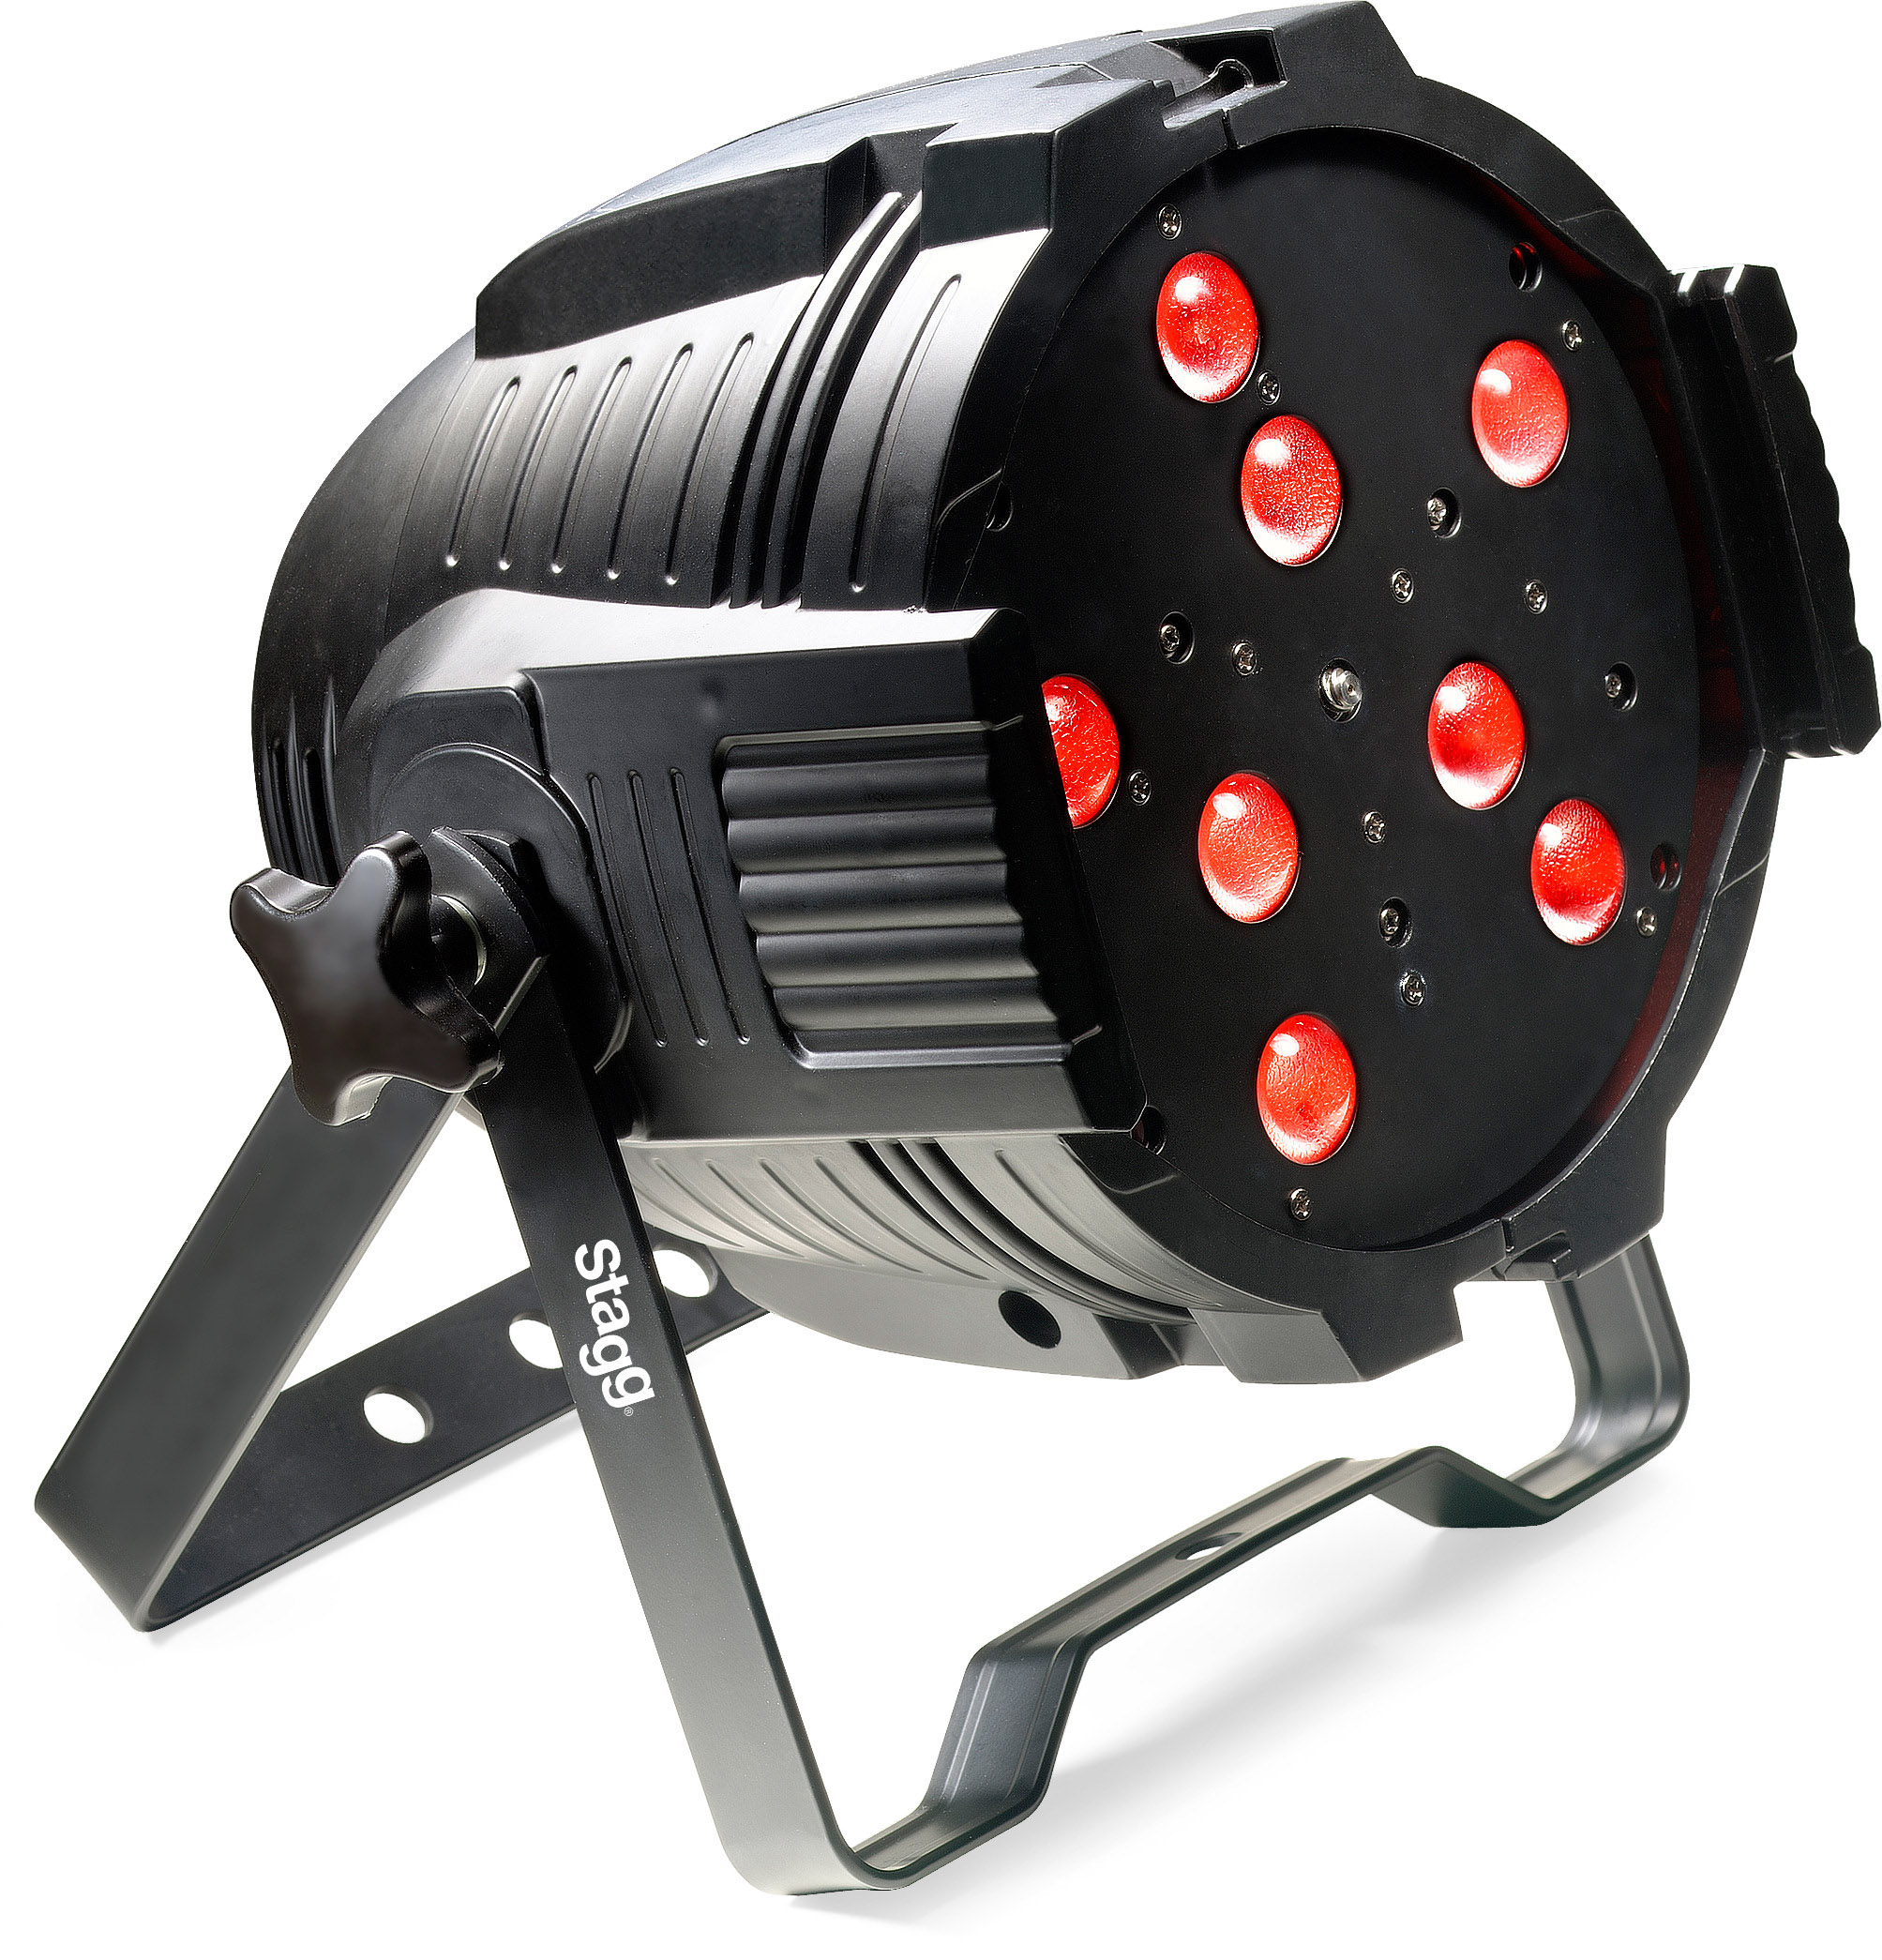 Stagg SLI KINGPAR4Z-1 LED Metal Housed Spotlight with 8x8x RGBW LEDs & Motorized Zoom with Passive Cooling... by Stagg Music